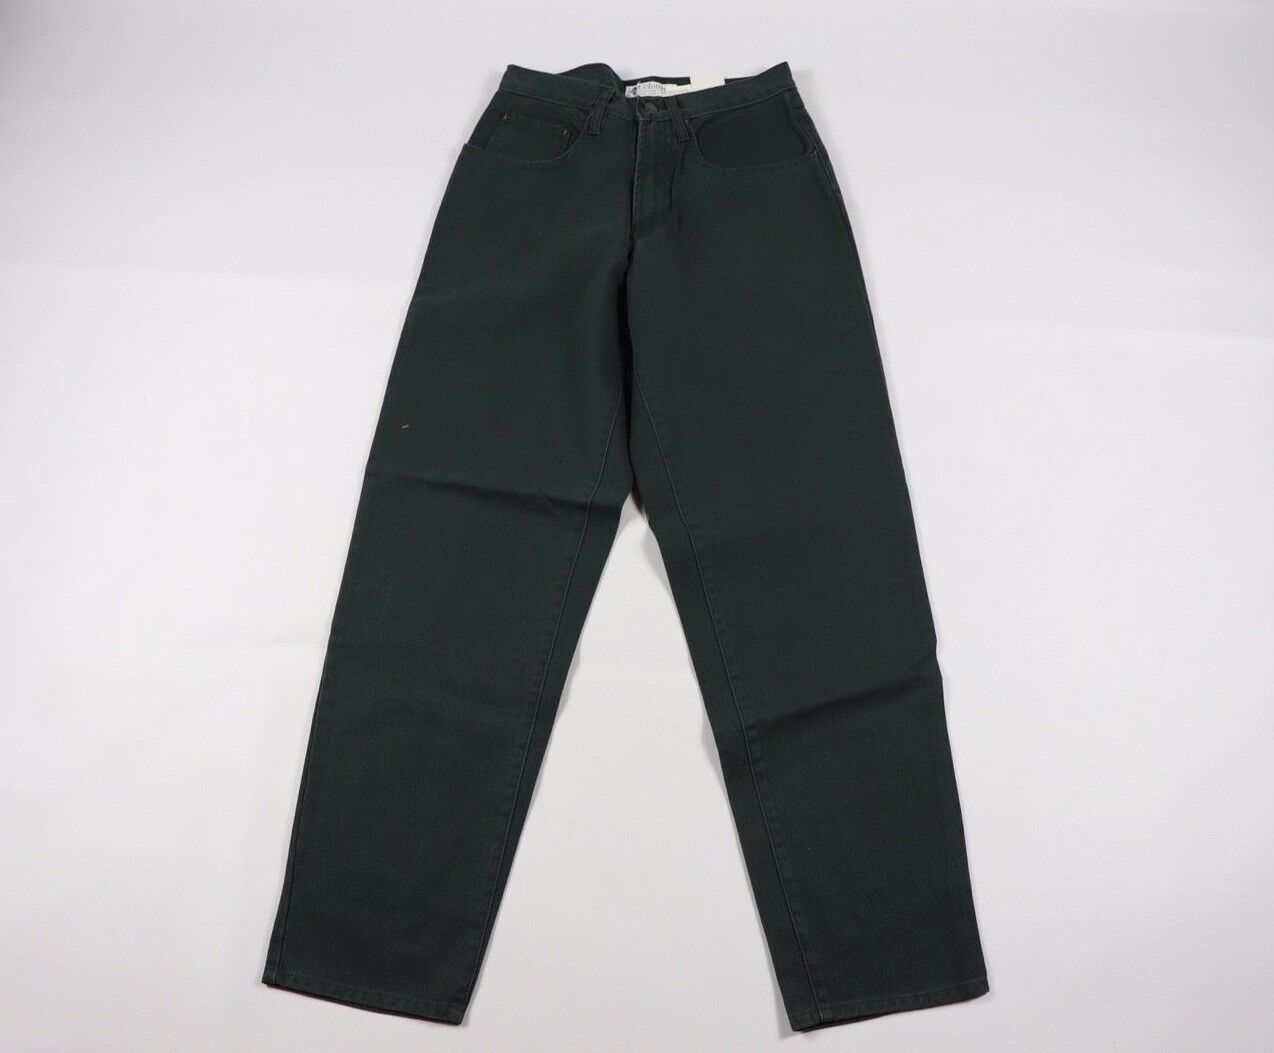 Vintage 90s New Columbia Mens 30x32 Relaxed Fit Tough Mother Jeans Pants Green